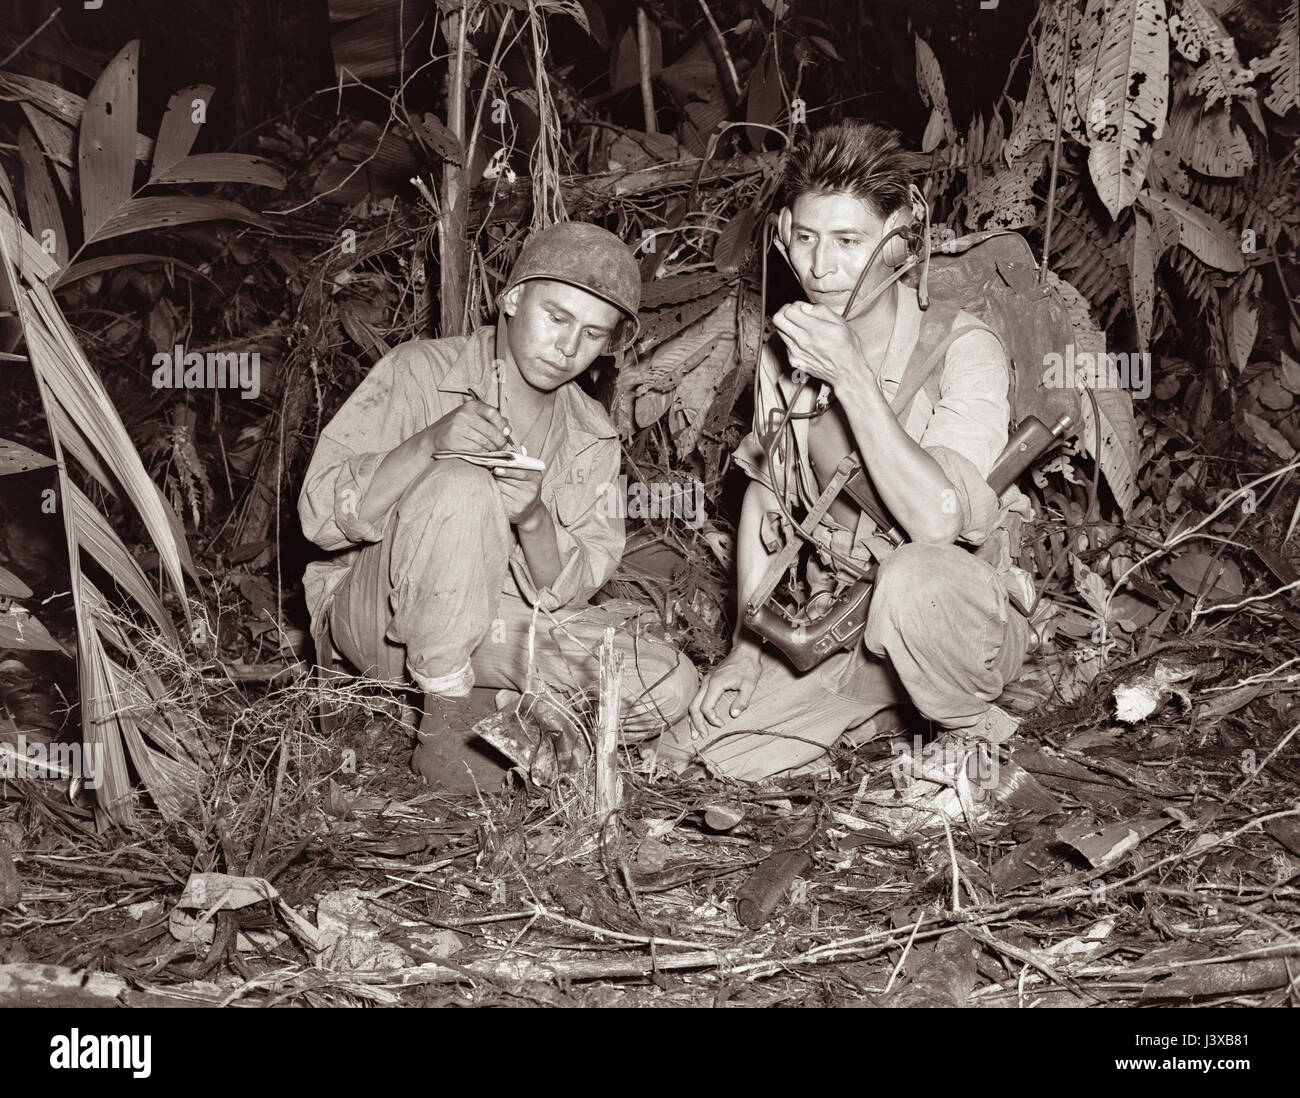 Navajo Code Talkers at Bougainville in December, 1943 during World War II. Corporal Henry Bake Jr (left) and Private - Stock Image